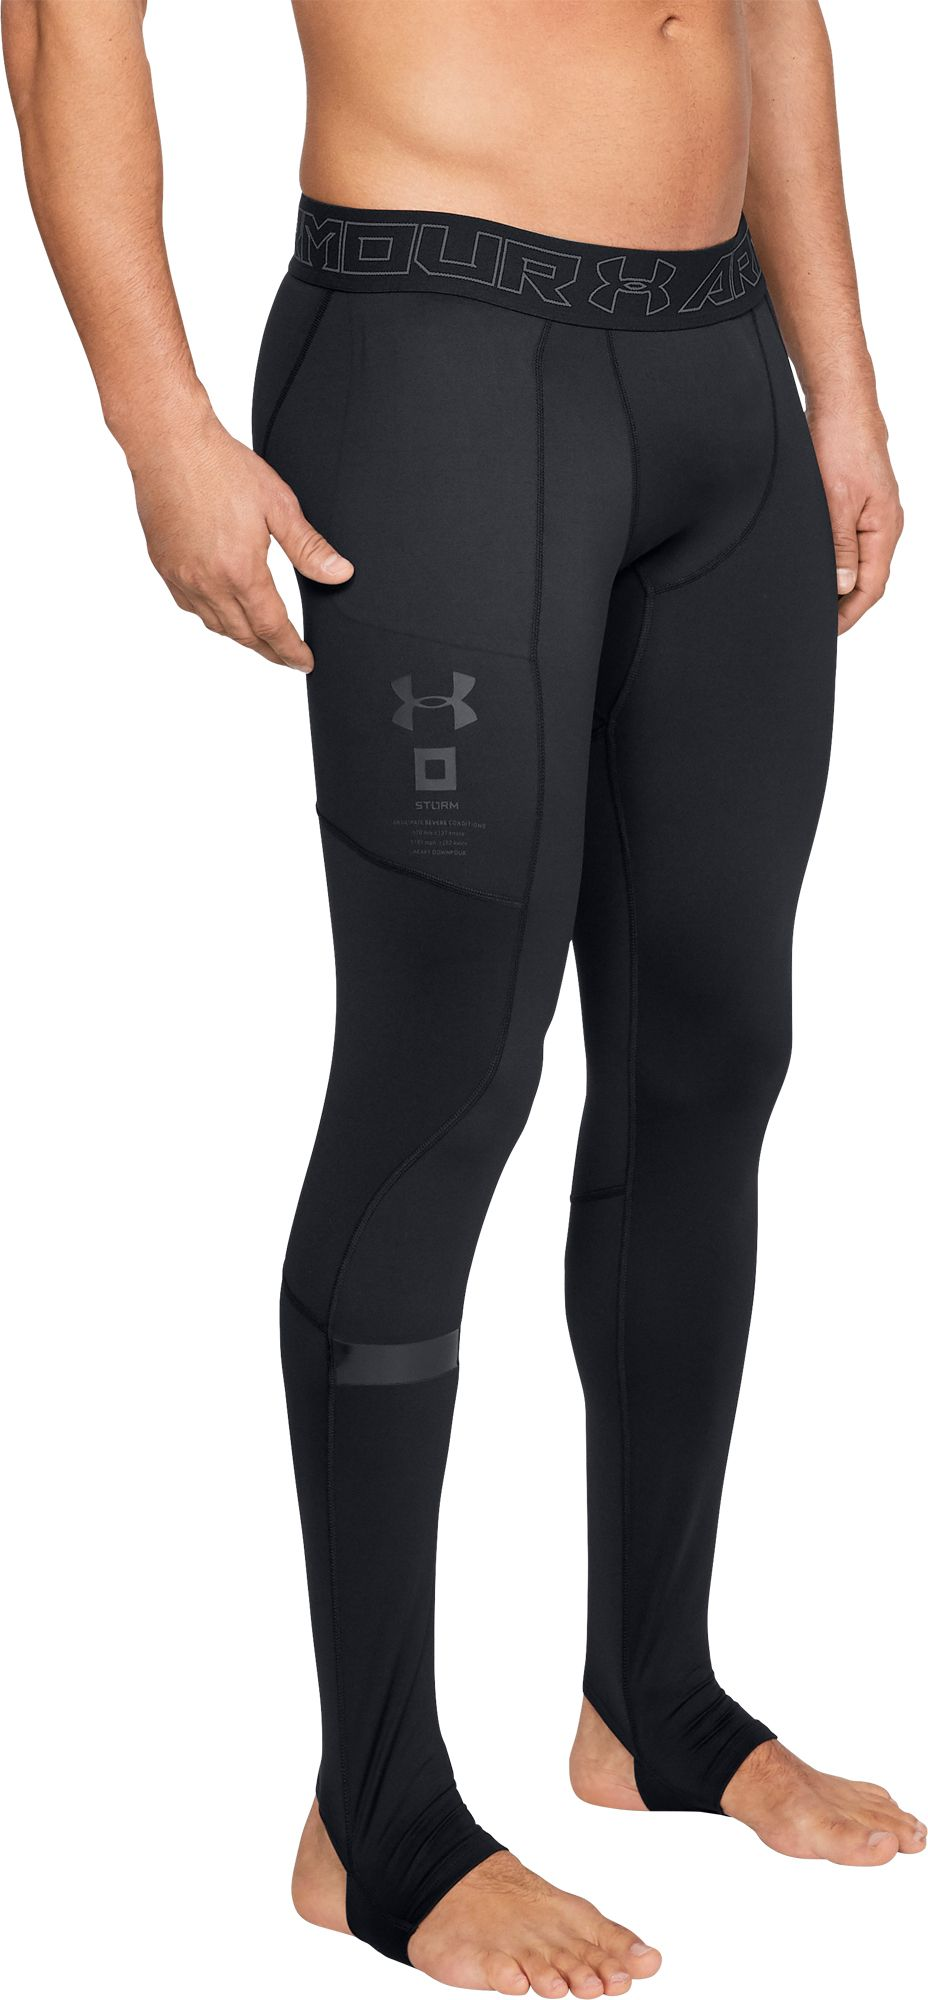 Under Armour Men's Storm Cyclone ColdGear Leggings, Size: Small, Black thumbnail